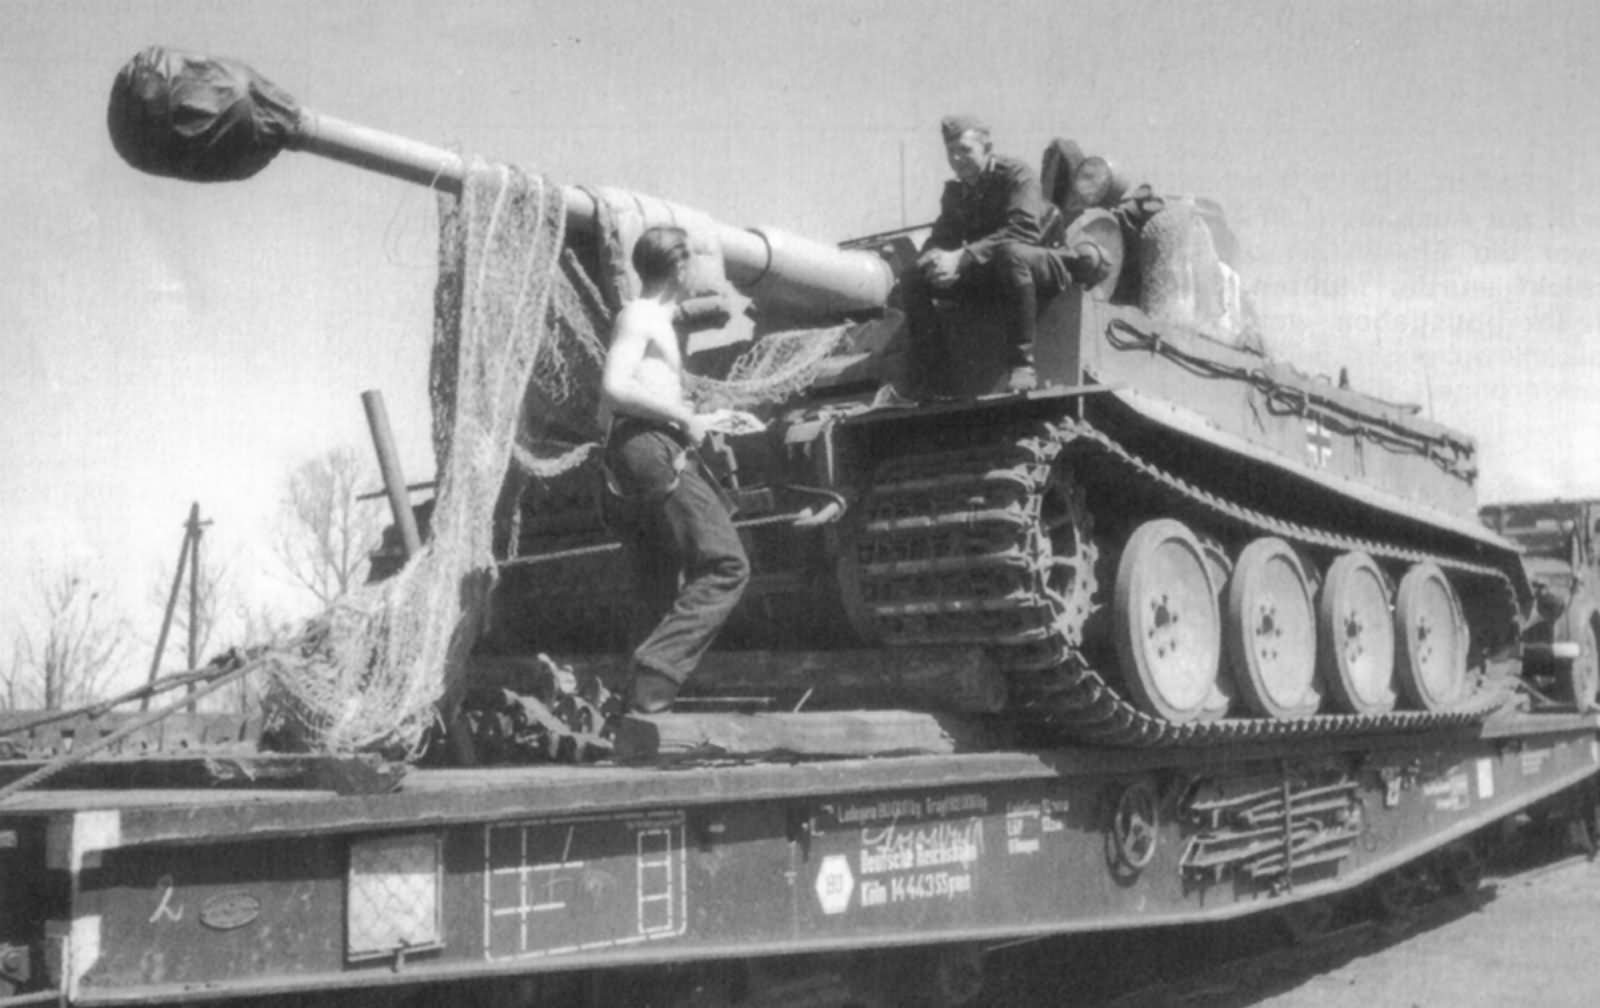 Tiger of the Schwere Panzer Abteilung 503, tank code II. Tank being transported on rail car.